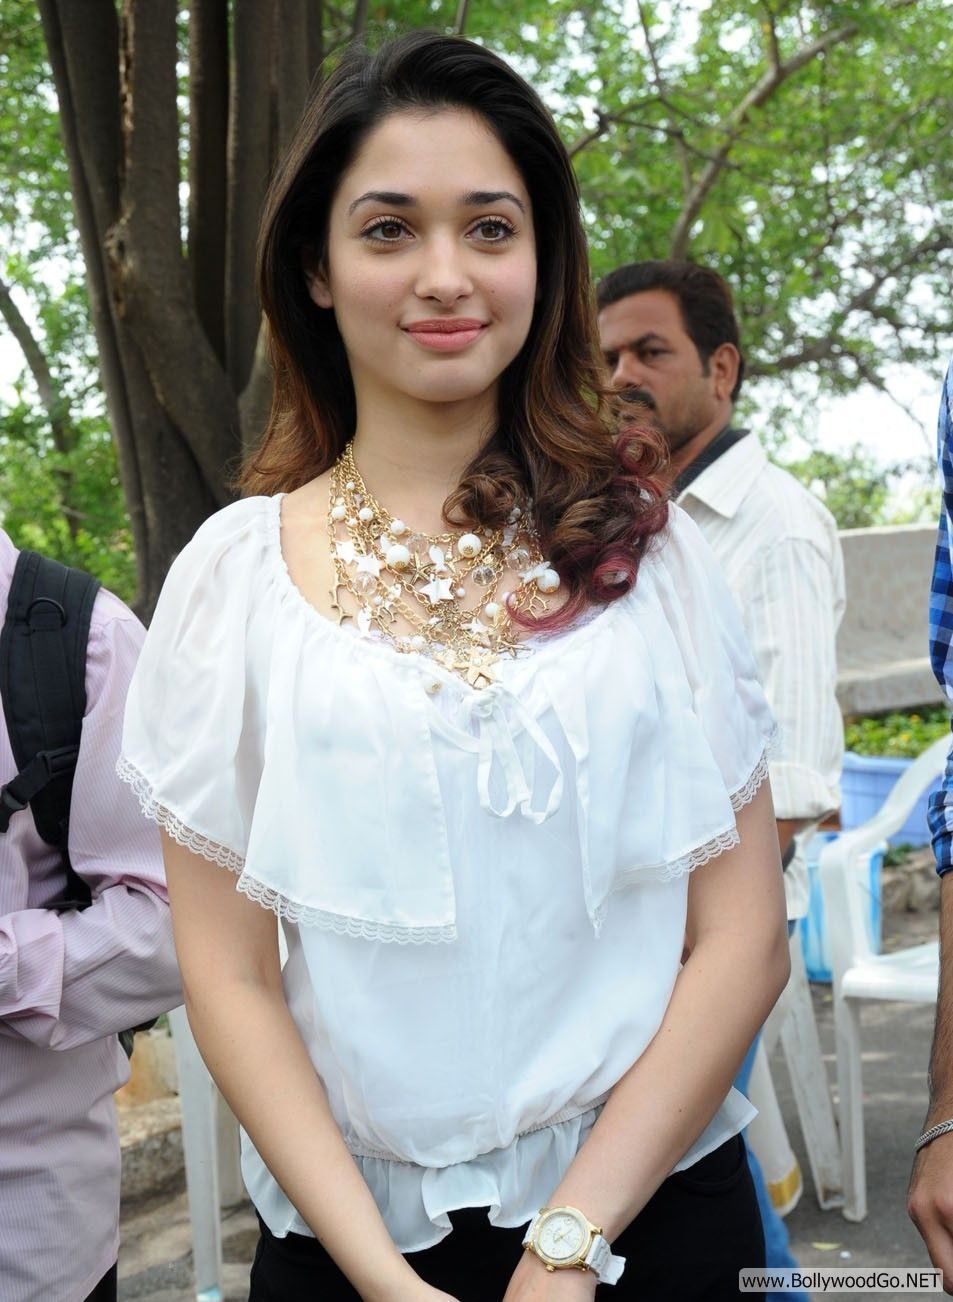 Tamanna Actress Nude Boobs Her Mangoes Look So Sey And Juicy In This